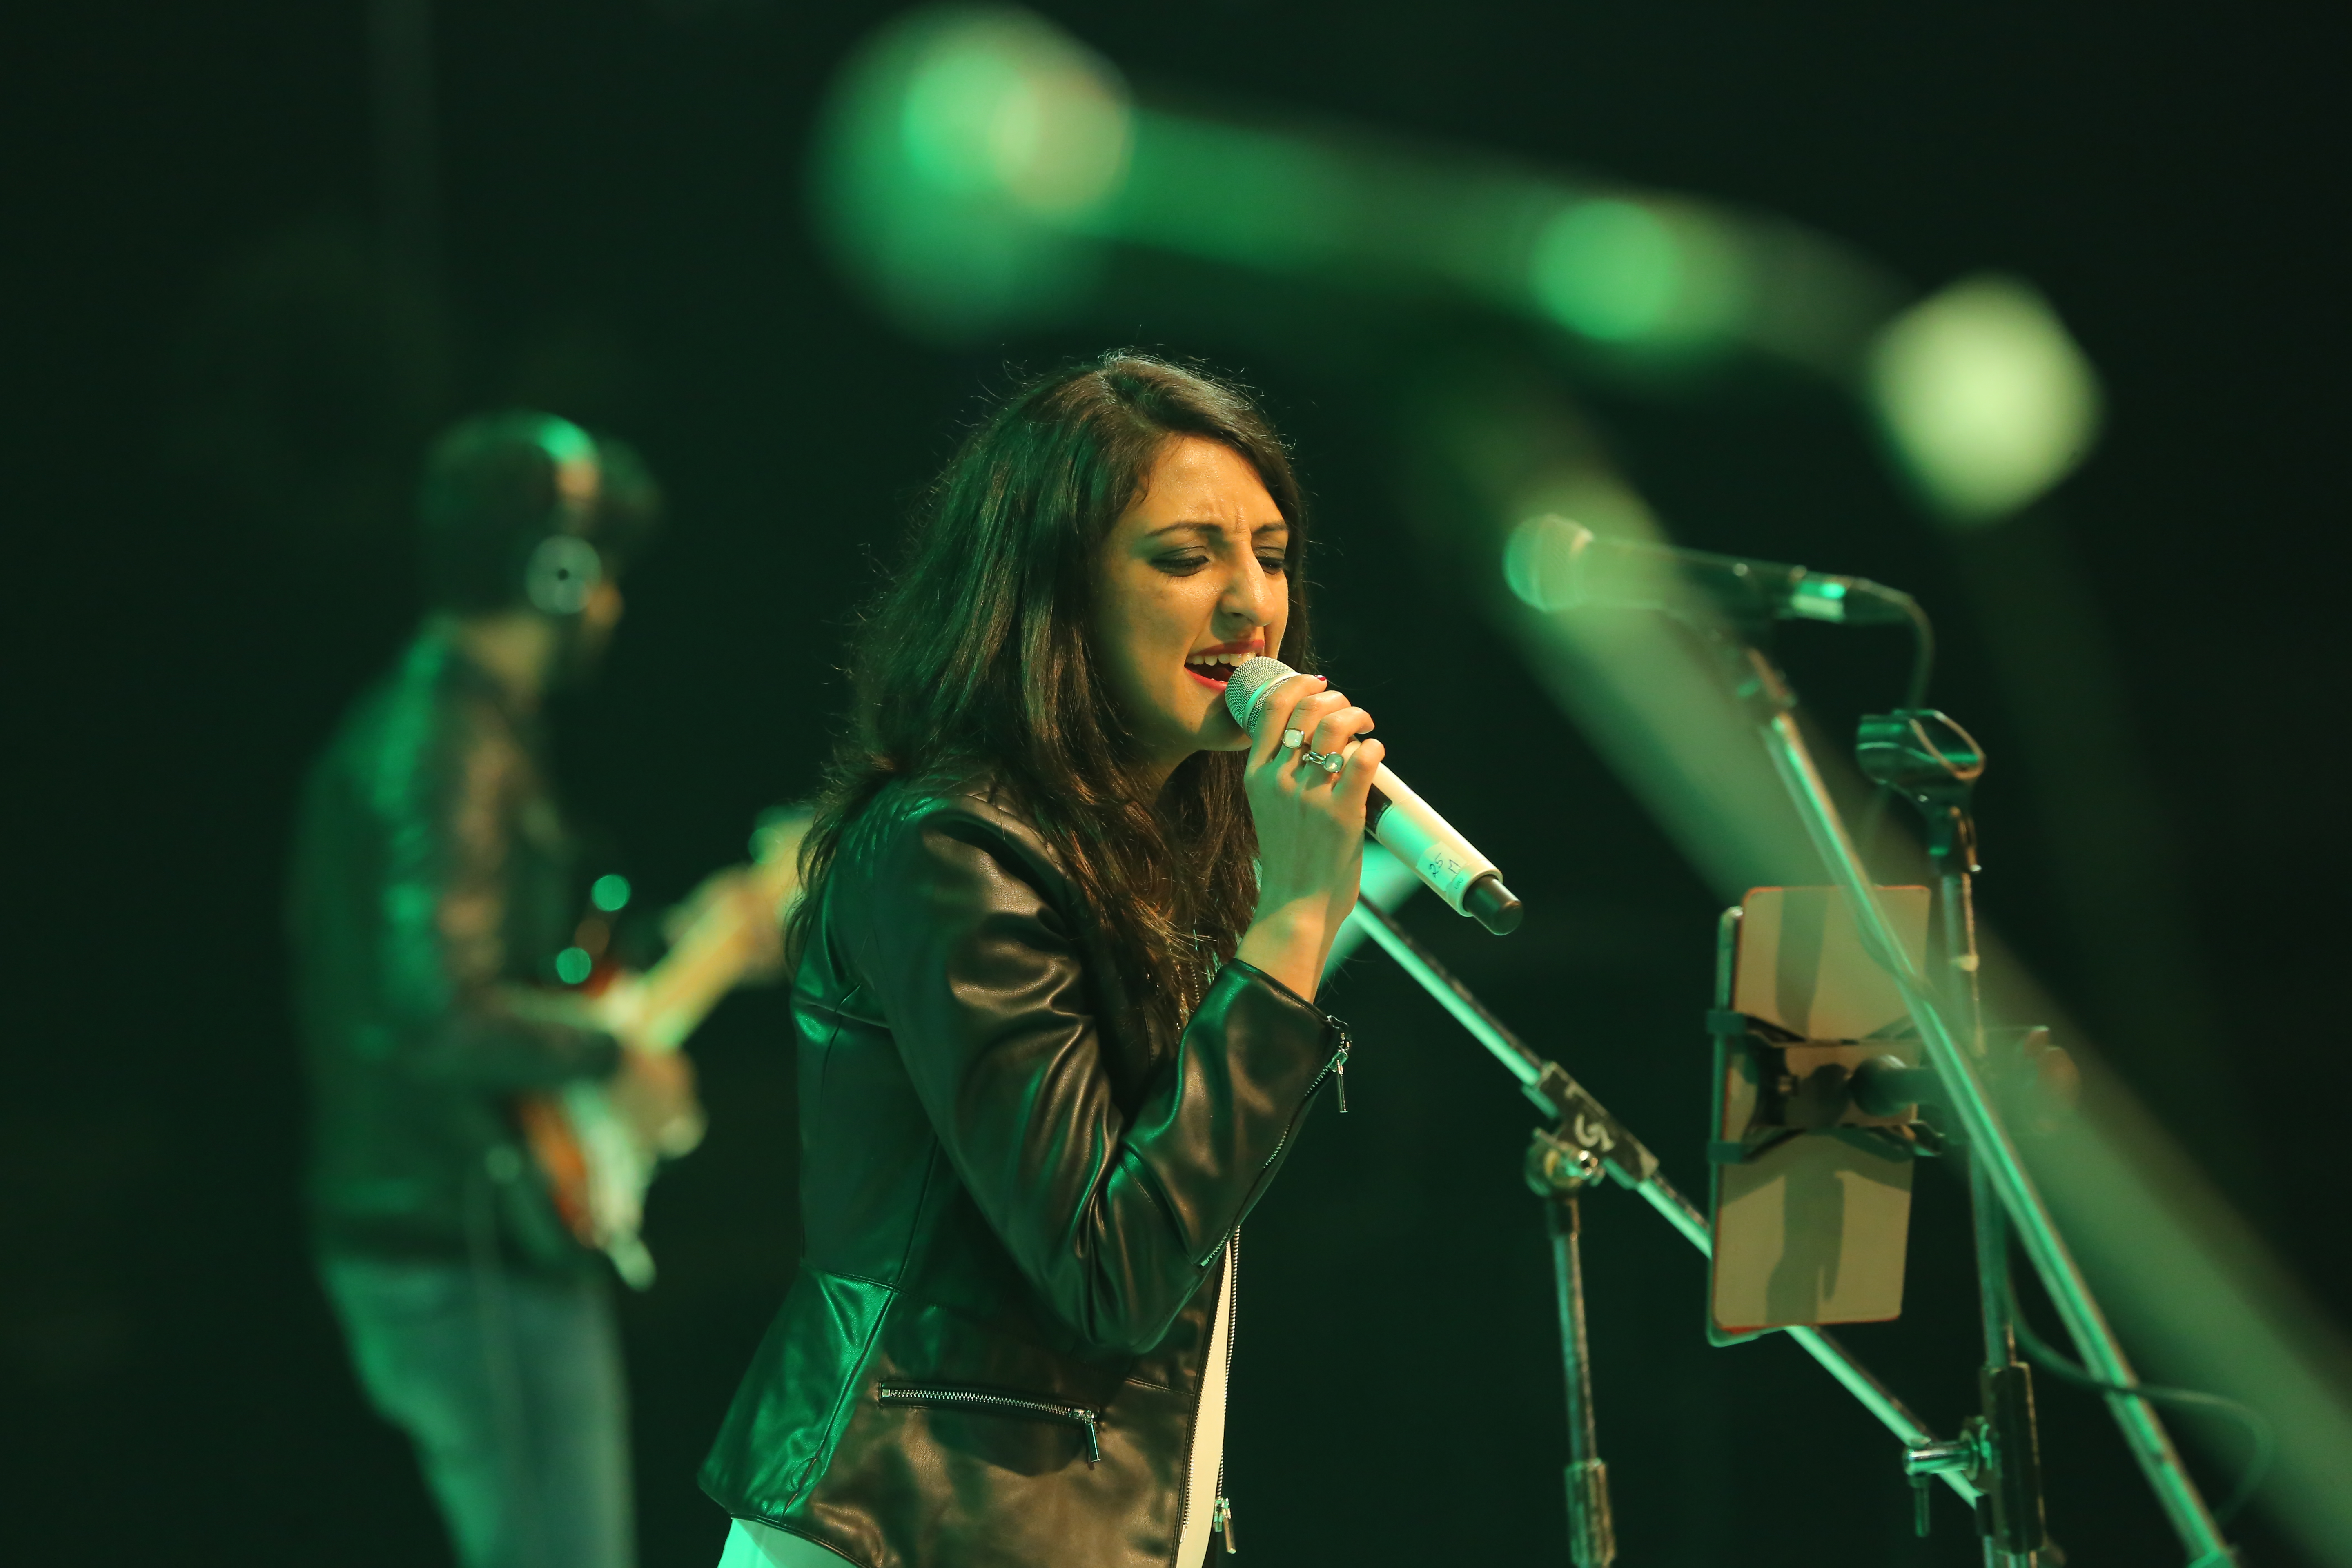 Indo-American flautist and singer Rasika Shekar during a performance.